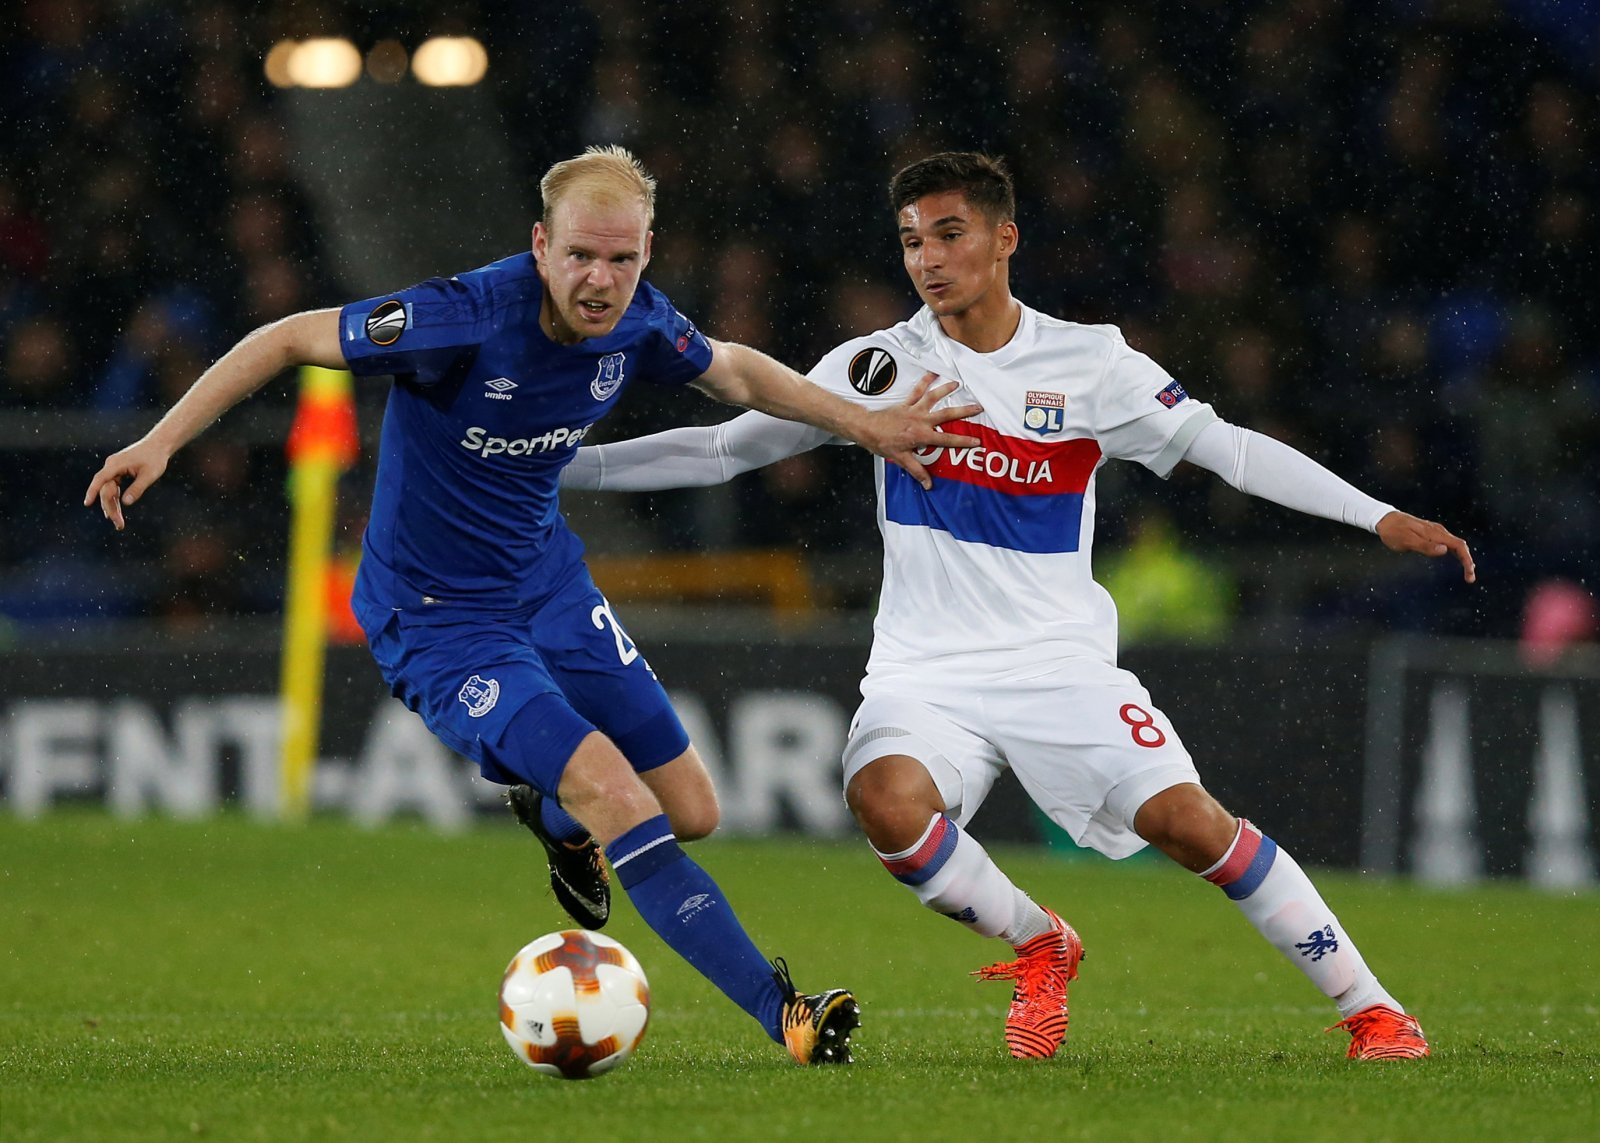 Everton's Davy Klaassen in action with Lyon's Houssem Aouar - Europa League - Oct 2017